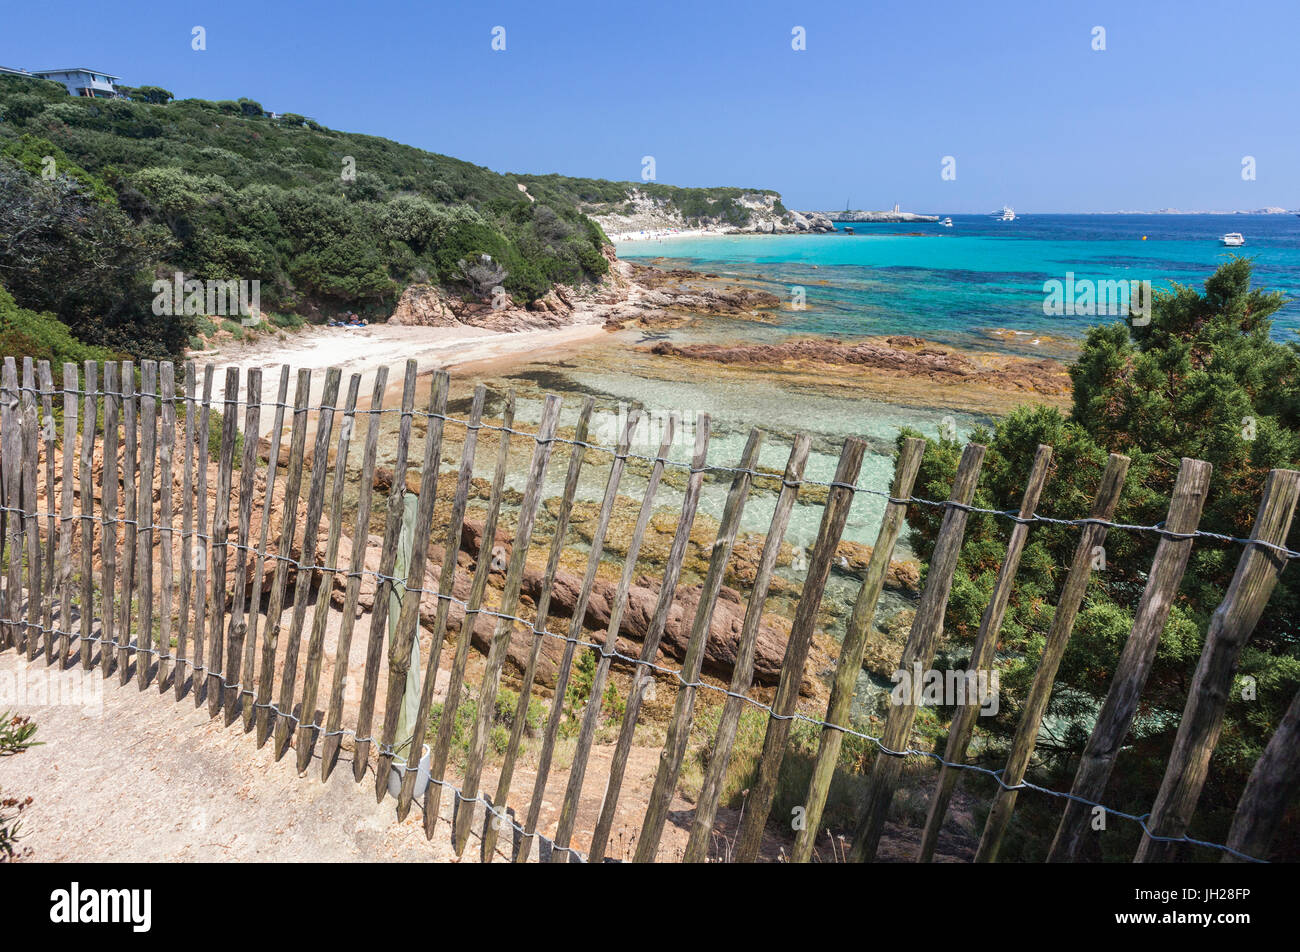 The wooden fence frames the limestone rocks and turquoise sea, Sperone, Bonifacio, South Corsica, France, Mediterranean, - Stock Image